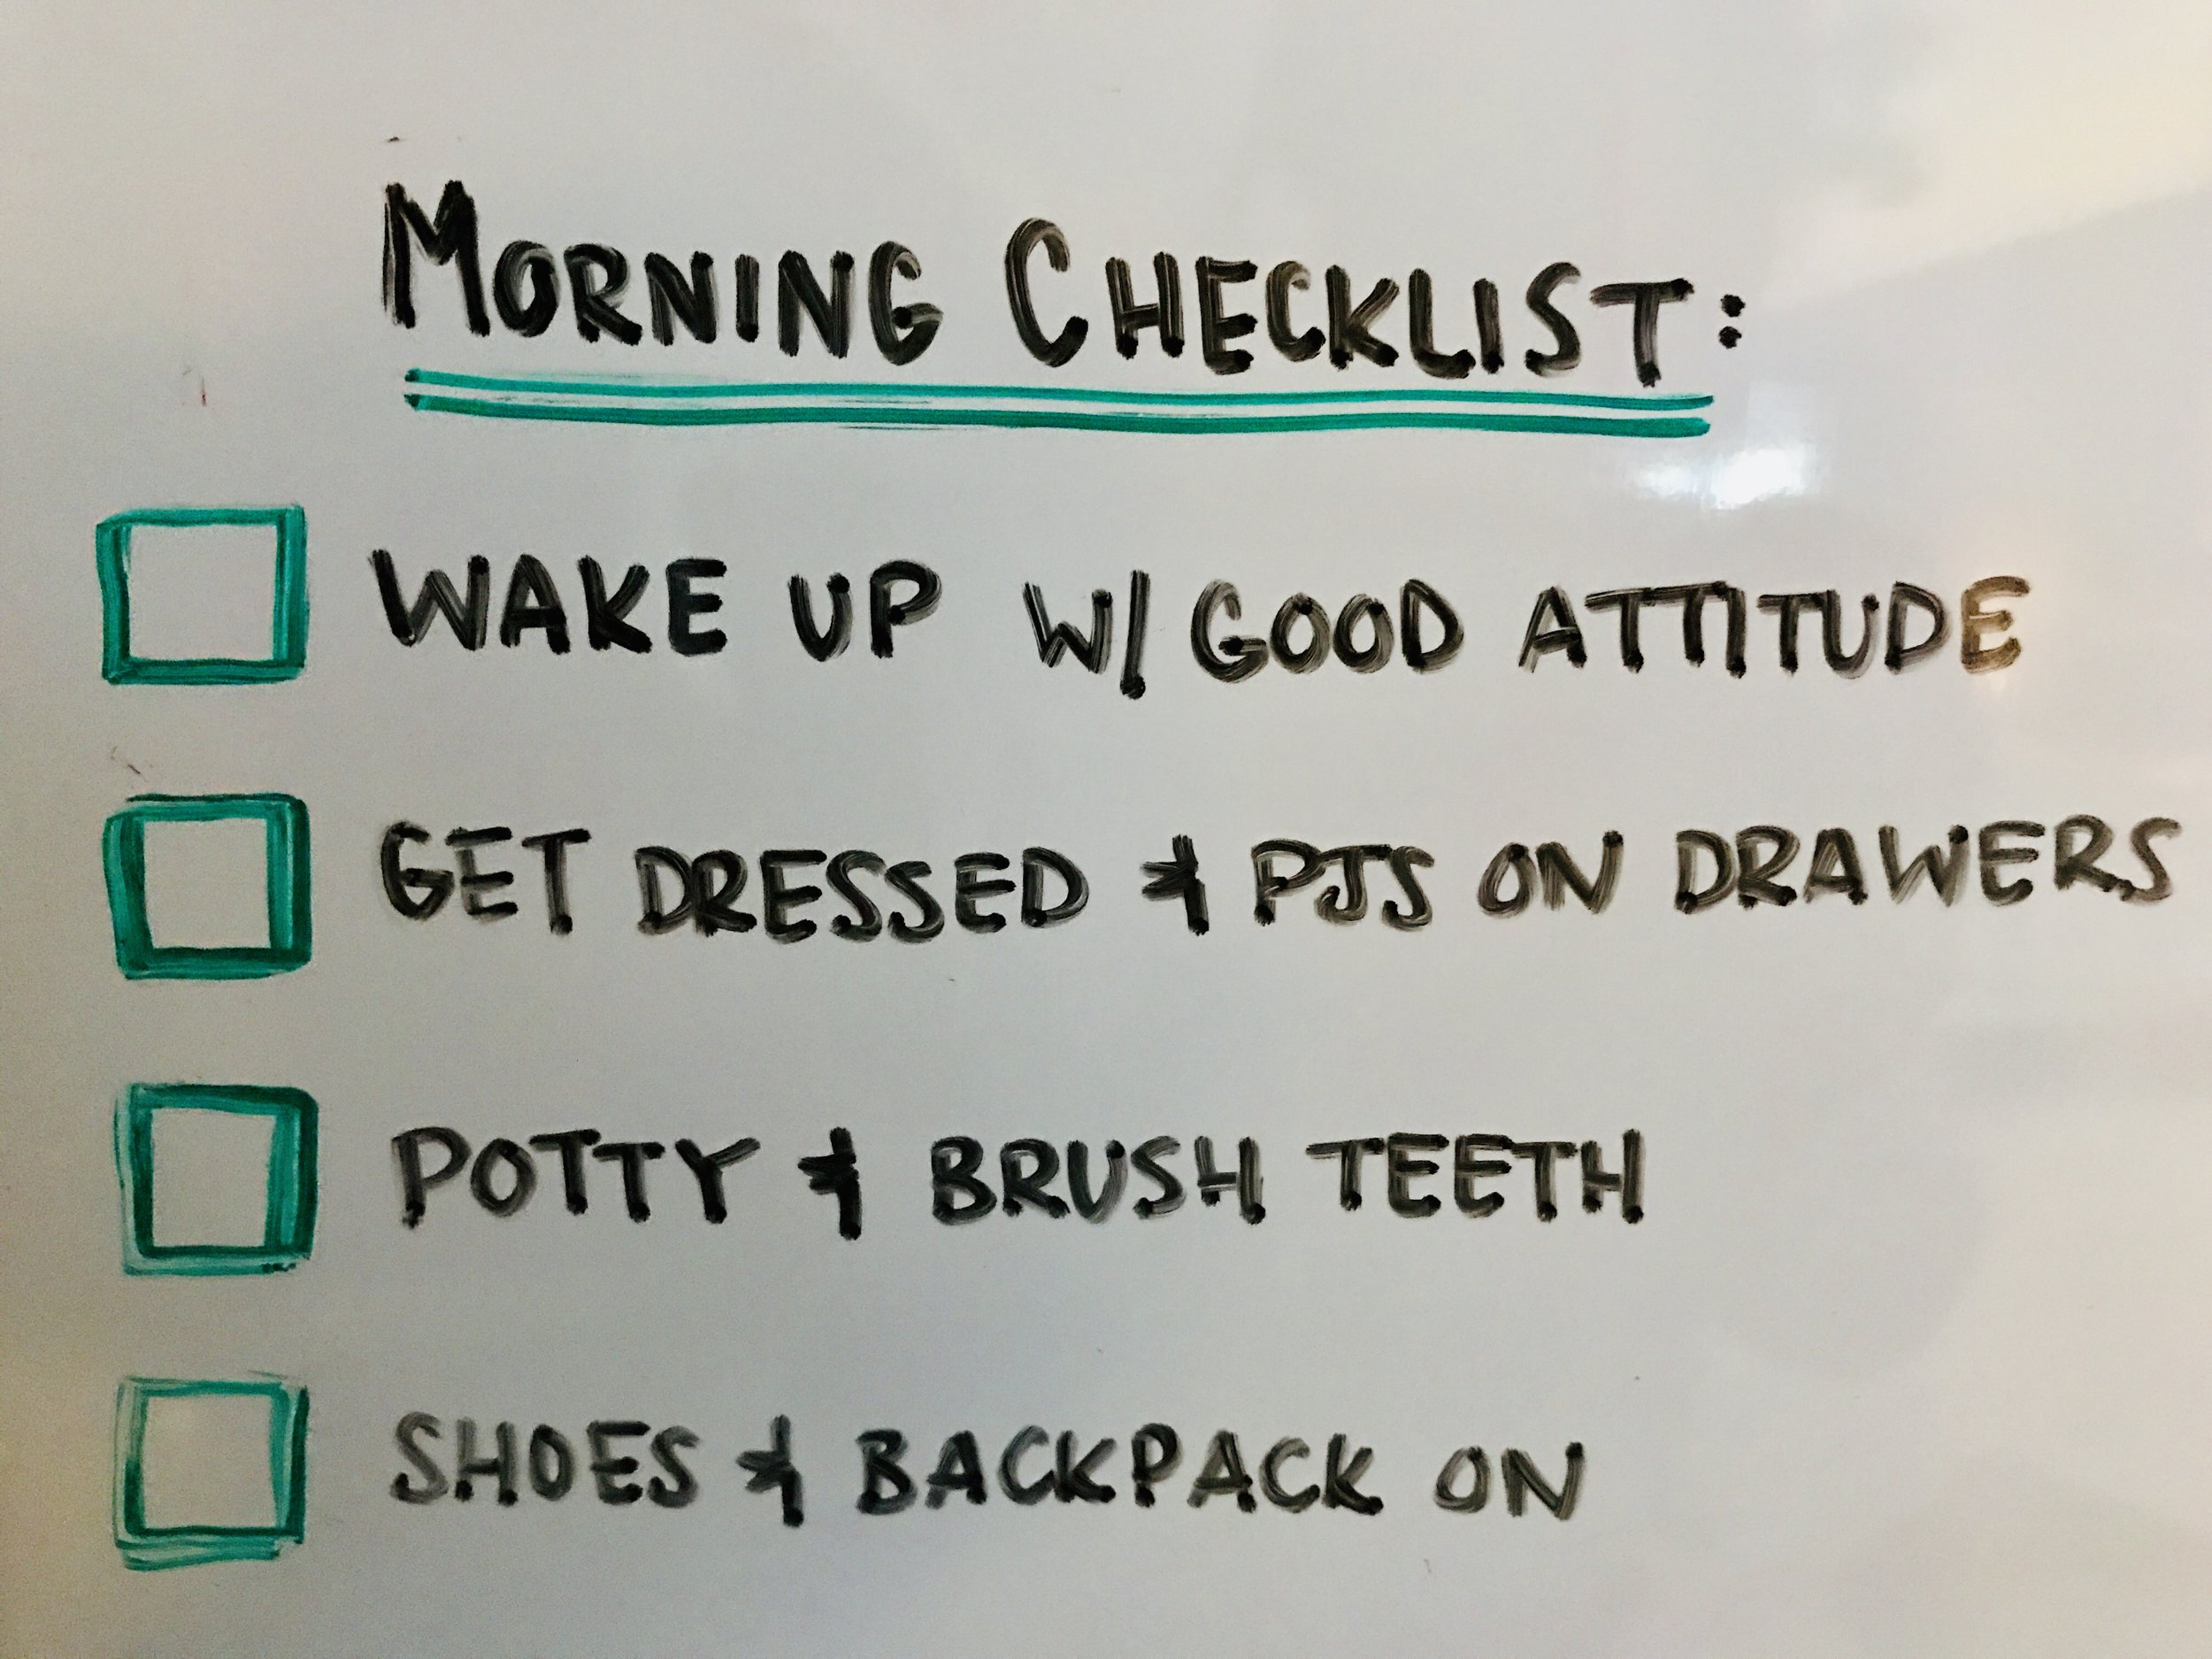 Set expectations. - A smooth morning only happens when everyone is on the same page. Help your family get into the swing of things with a simple checklist to start each morning, we recommend using a dry erase board on the fridge so everyone can see it!